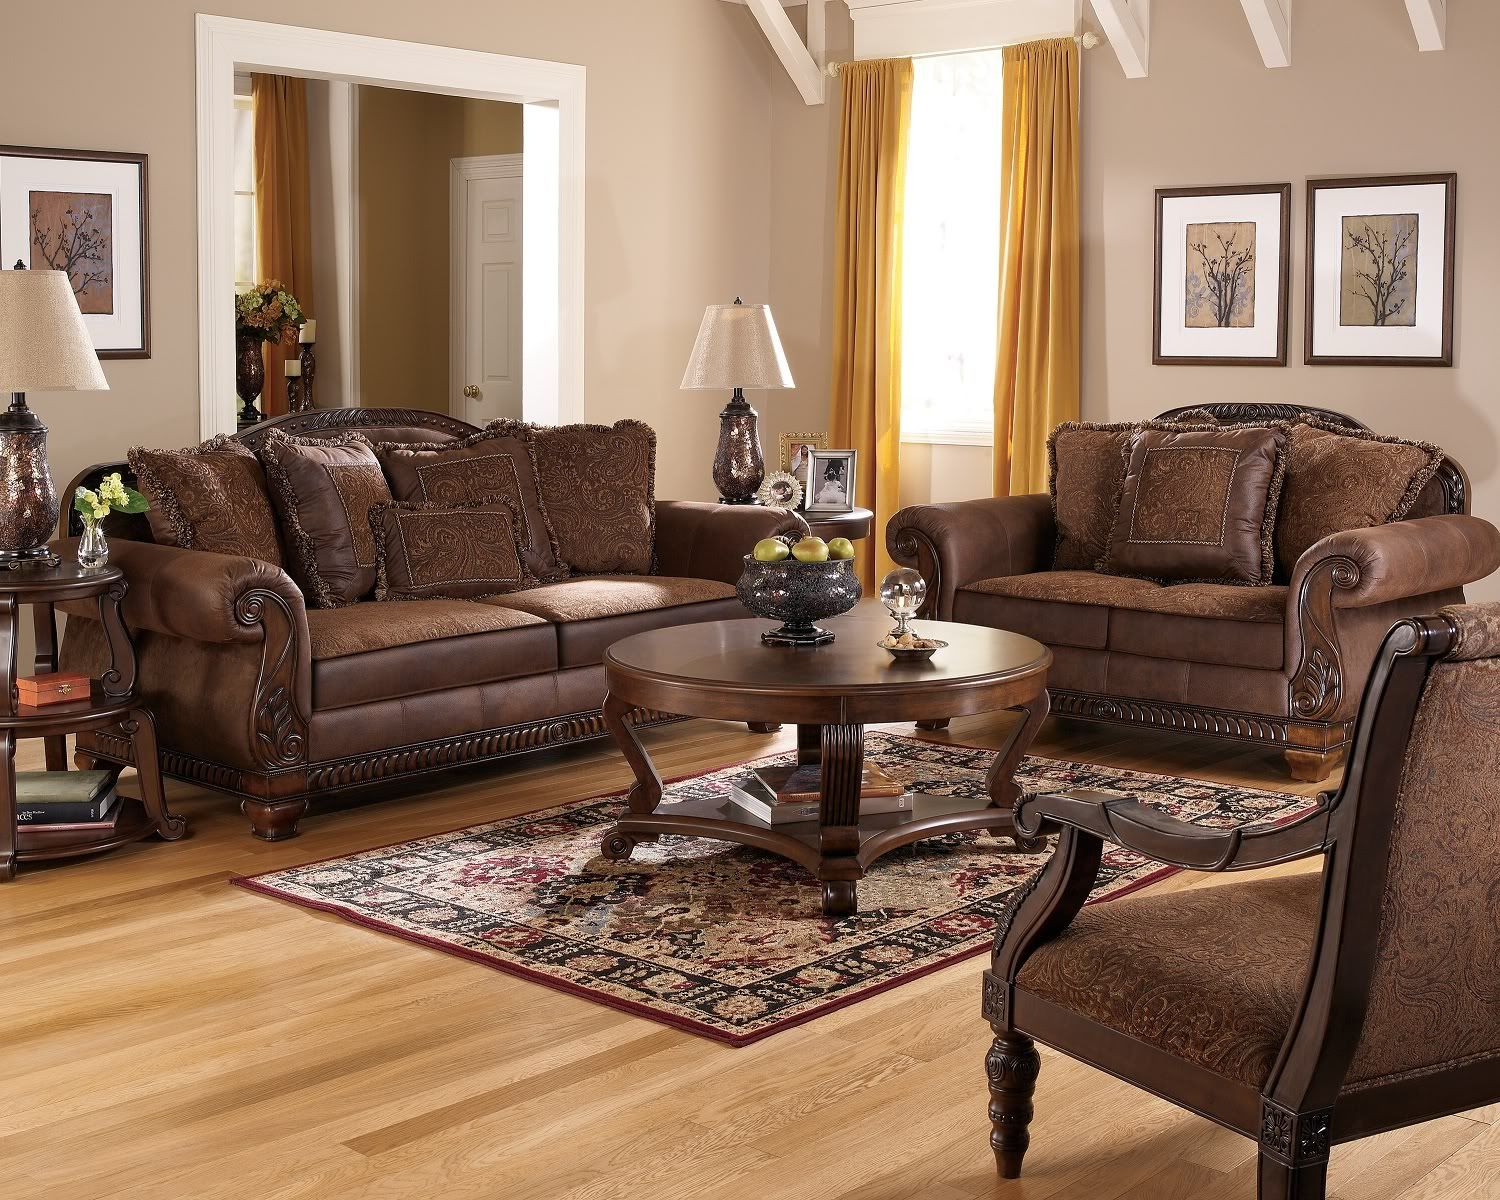 10 Best Wood Living Room Set